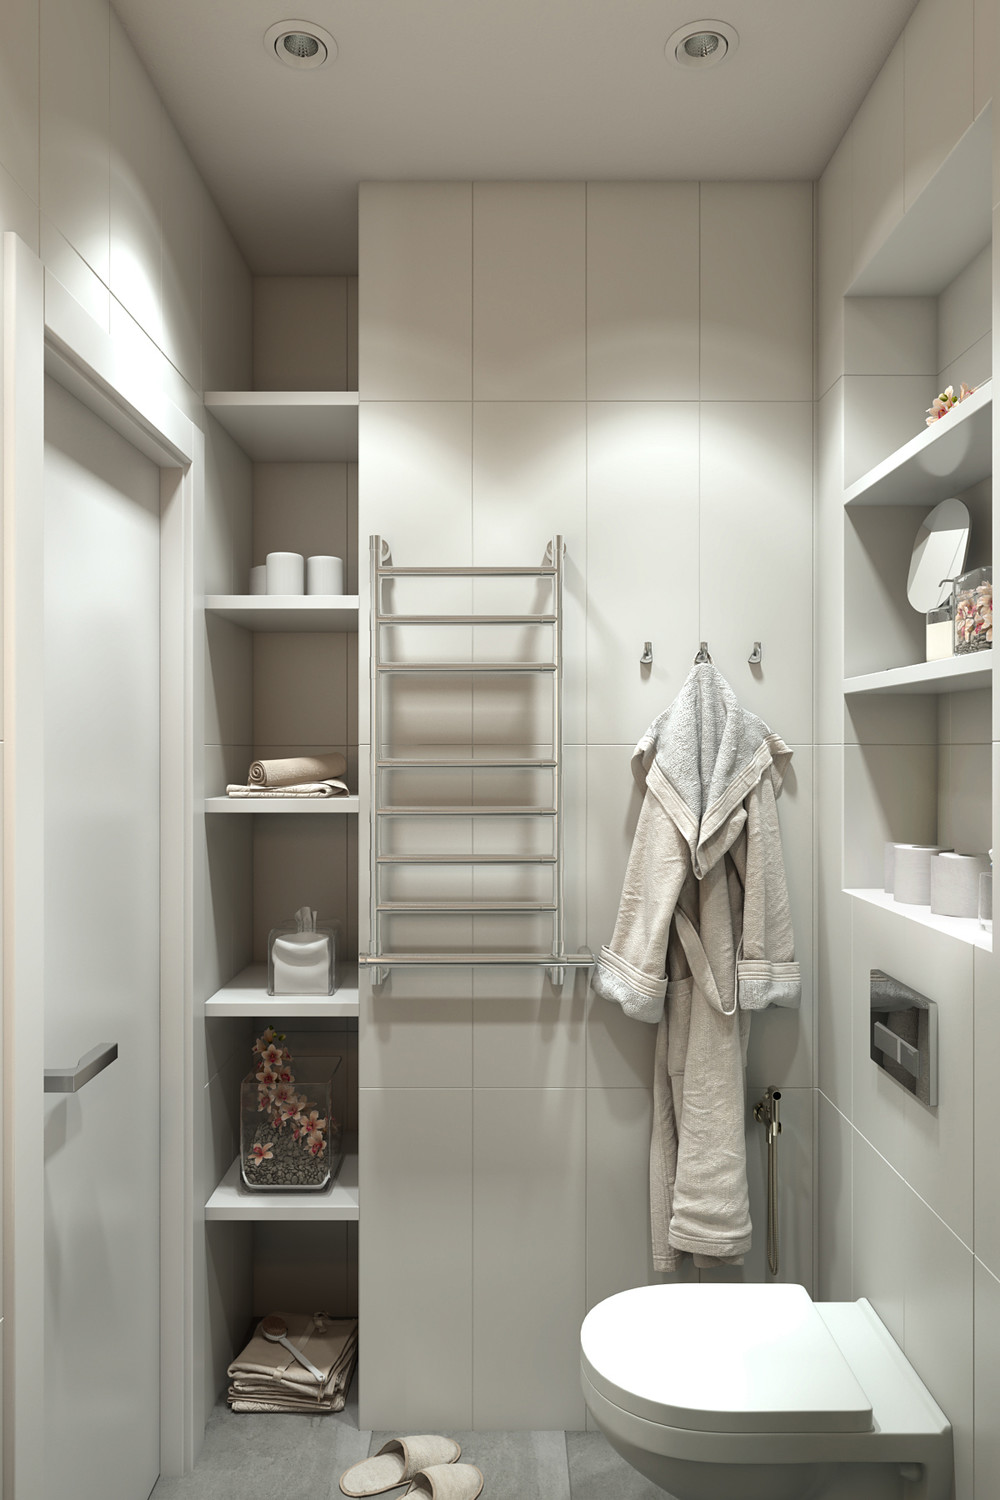 Small Bathroom Storage Ideas - 4 small apartments showcase the flexibility of compact design